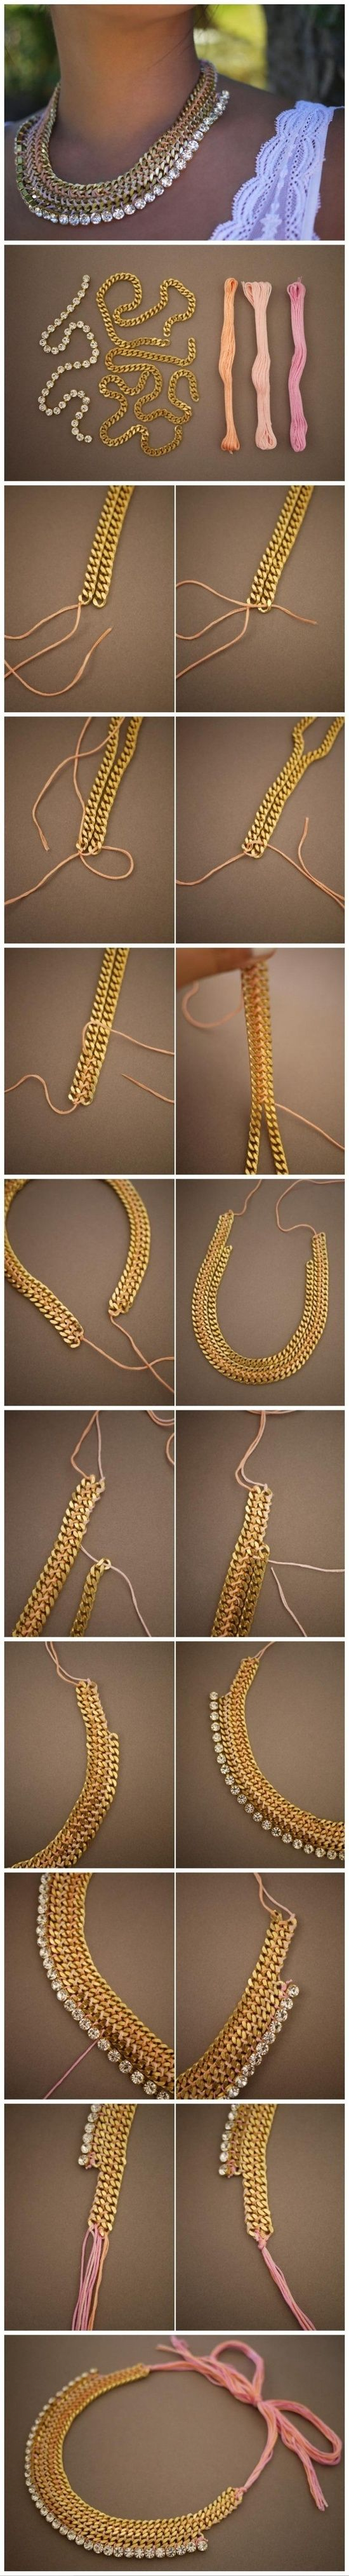 Do you wear a necklace with just about every outfit you put on? If so, then you will want to pay attention to this necklace tutorial because it teaches you how to make your own!